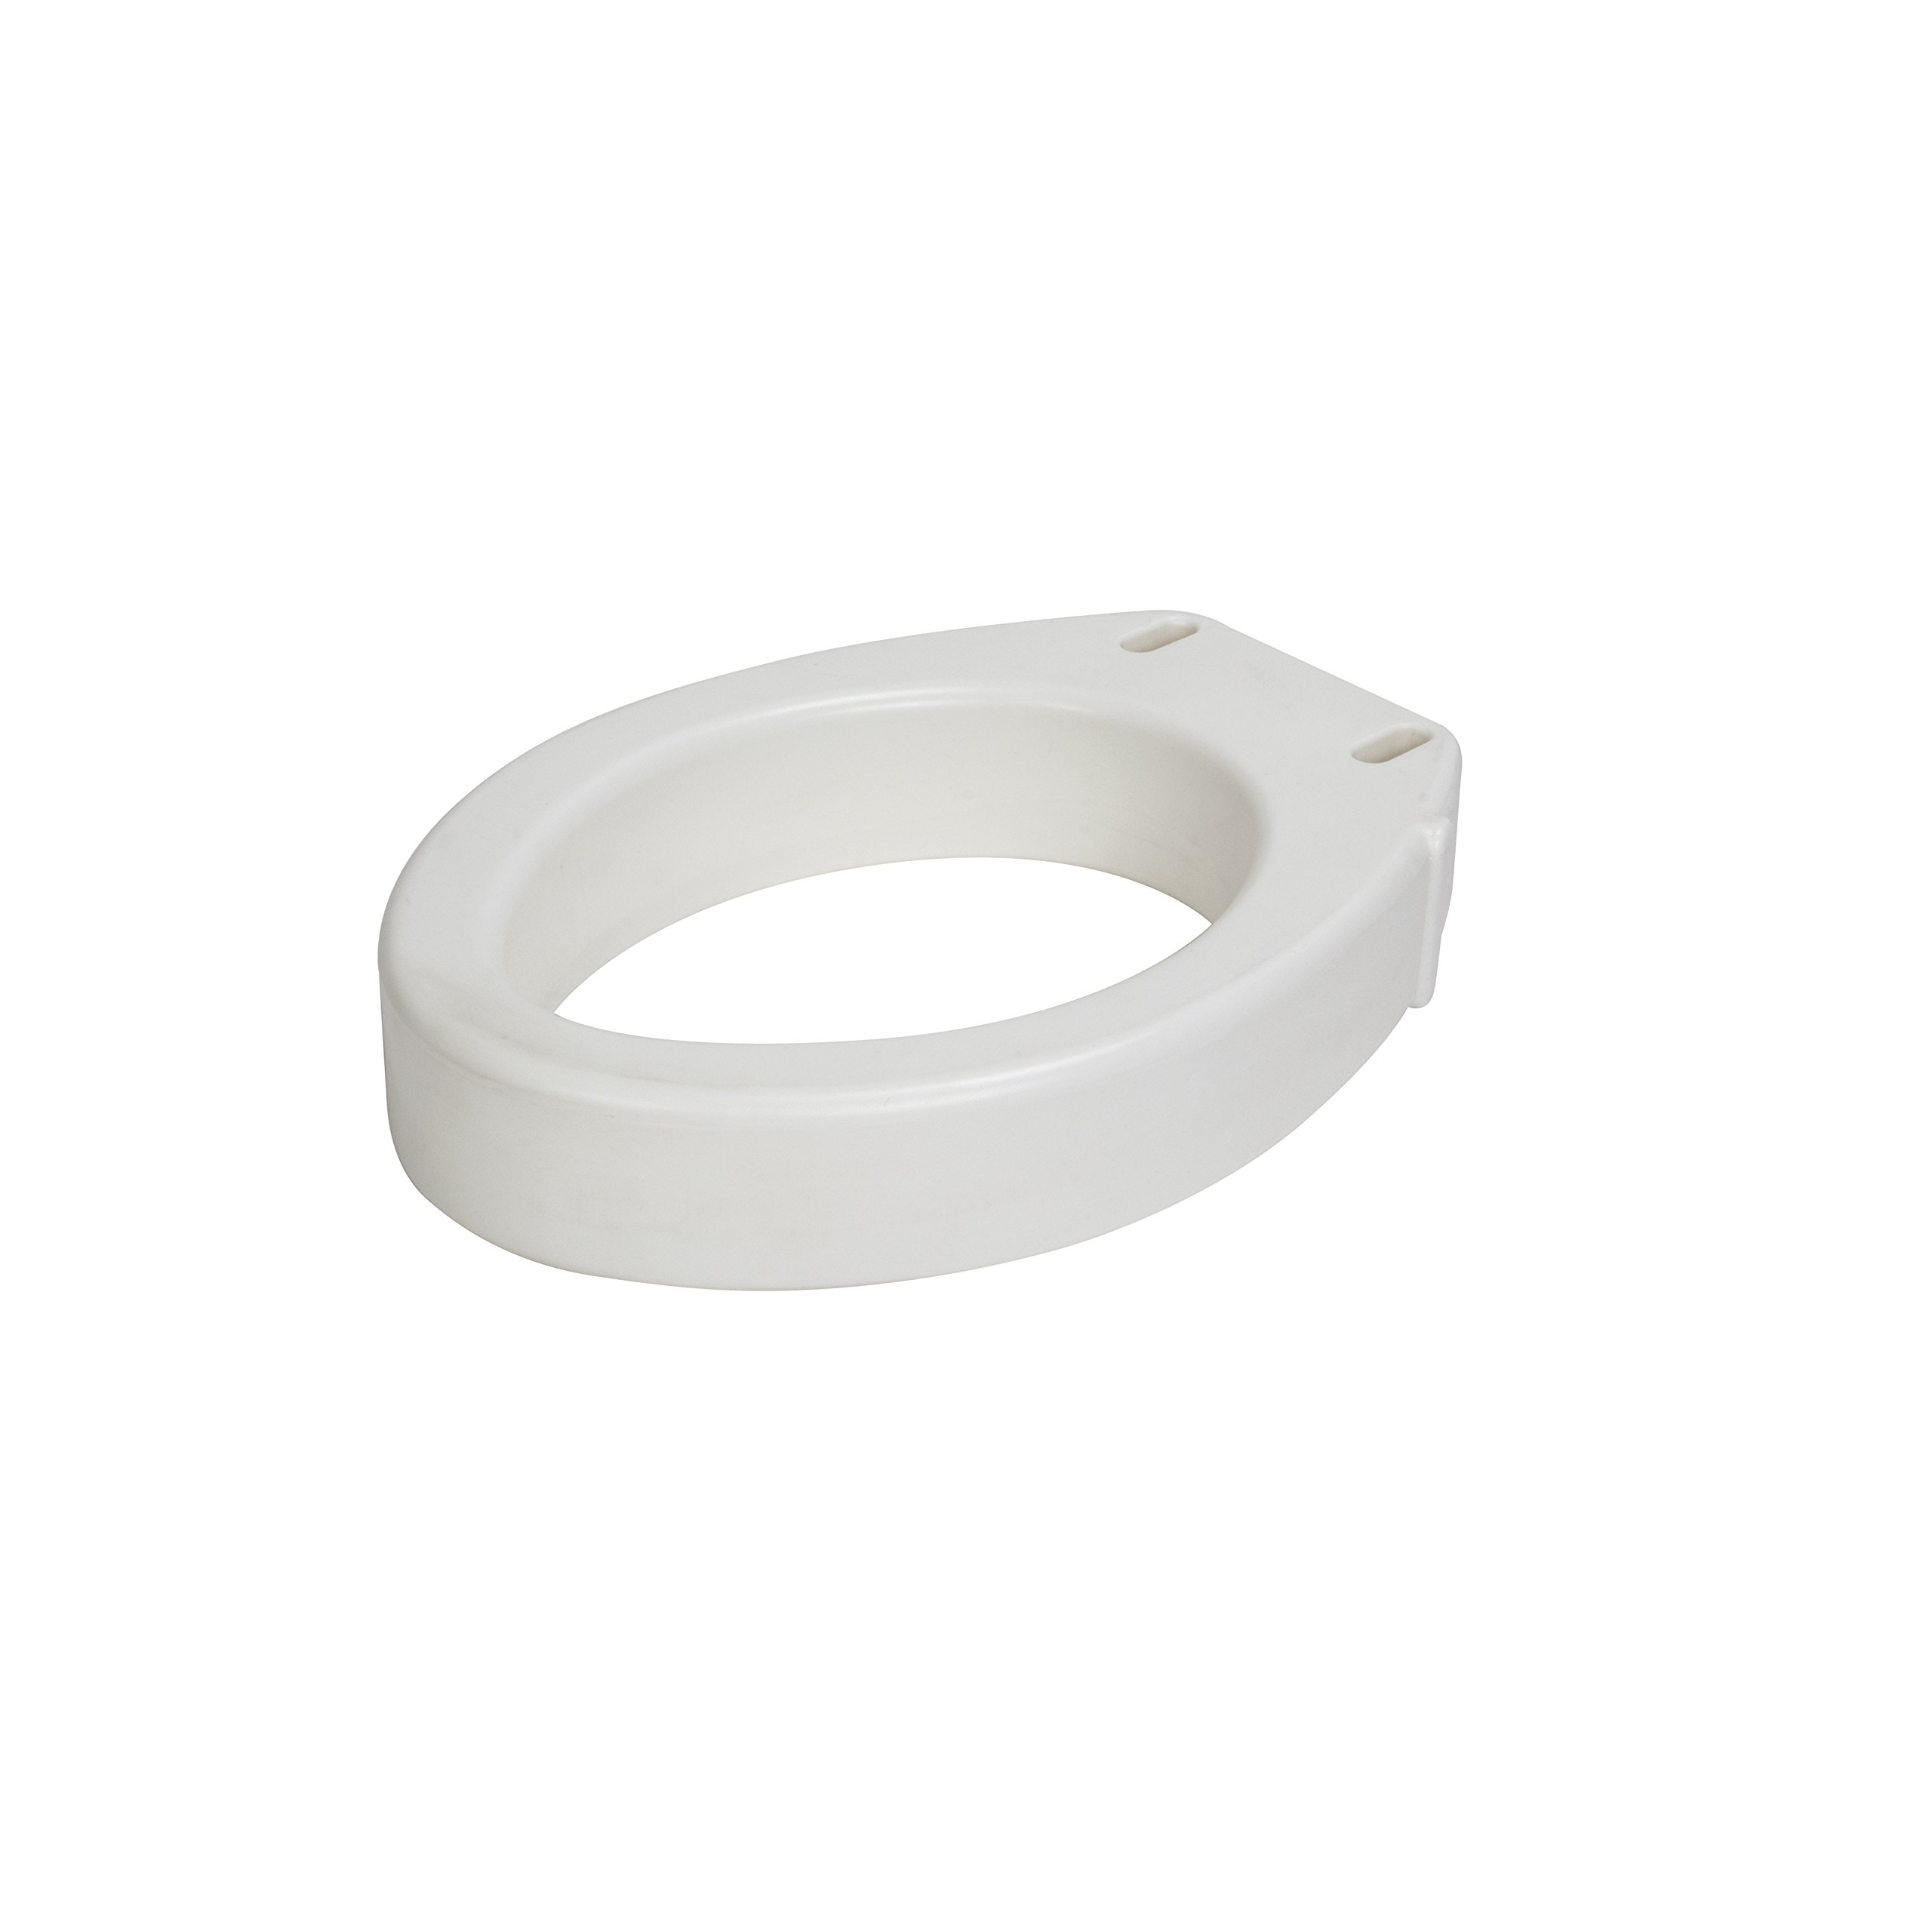 Drive Medical Toilet Seat Riser, Standard